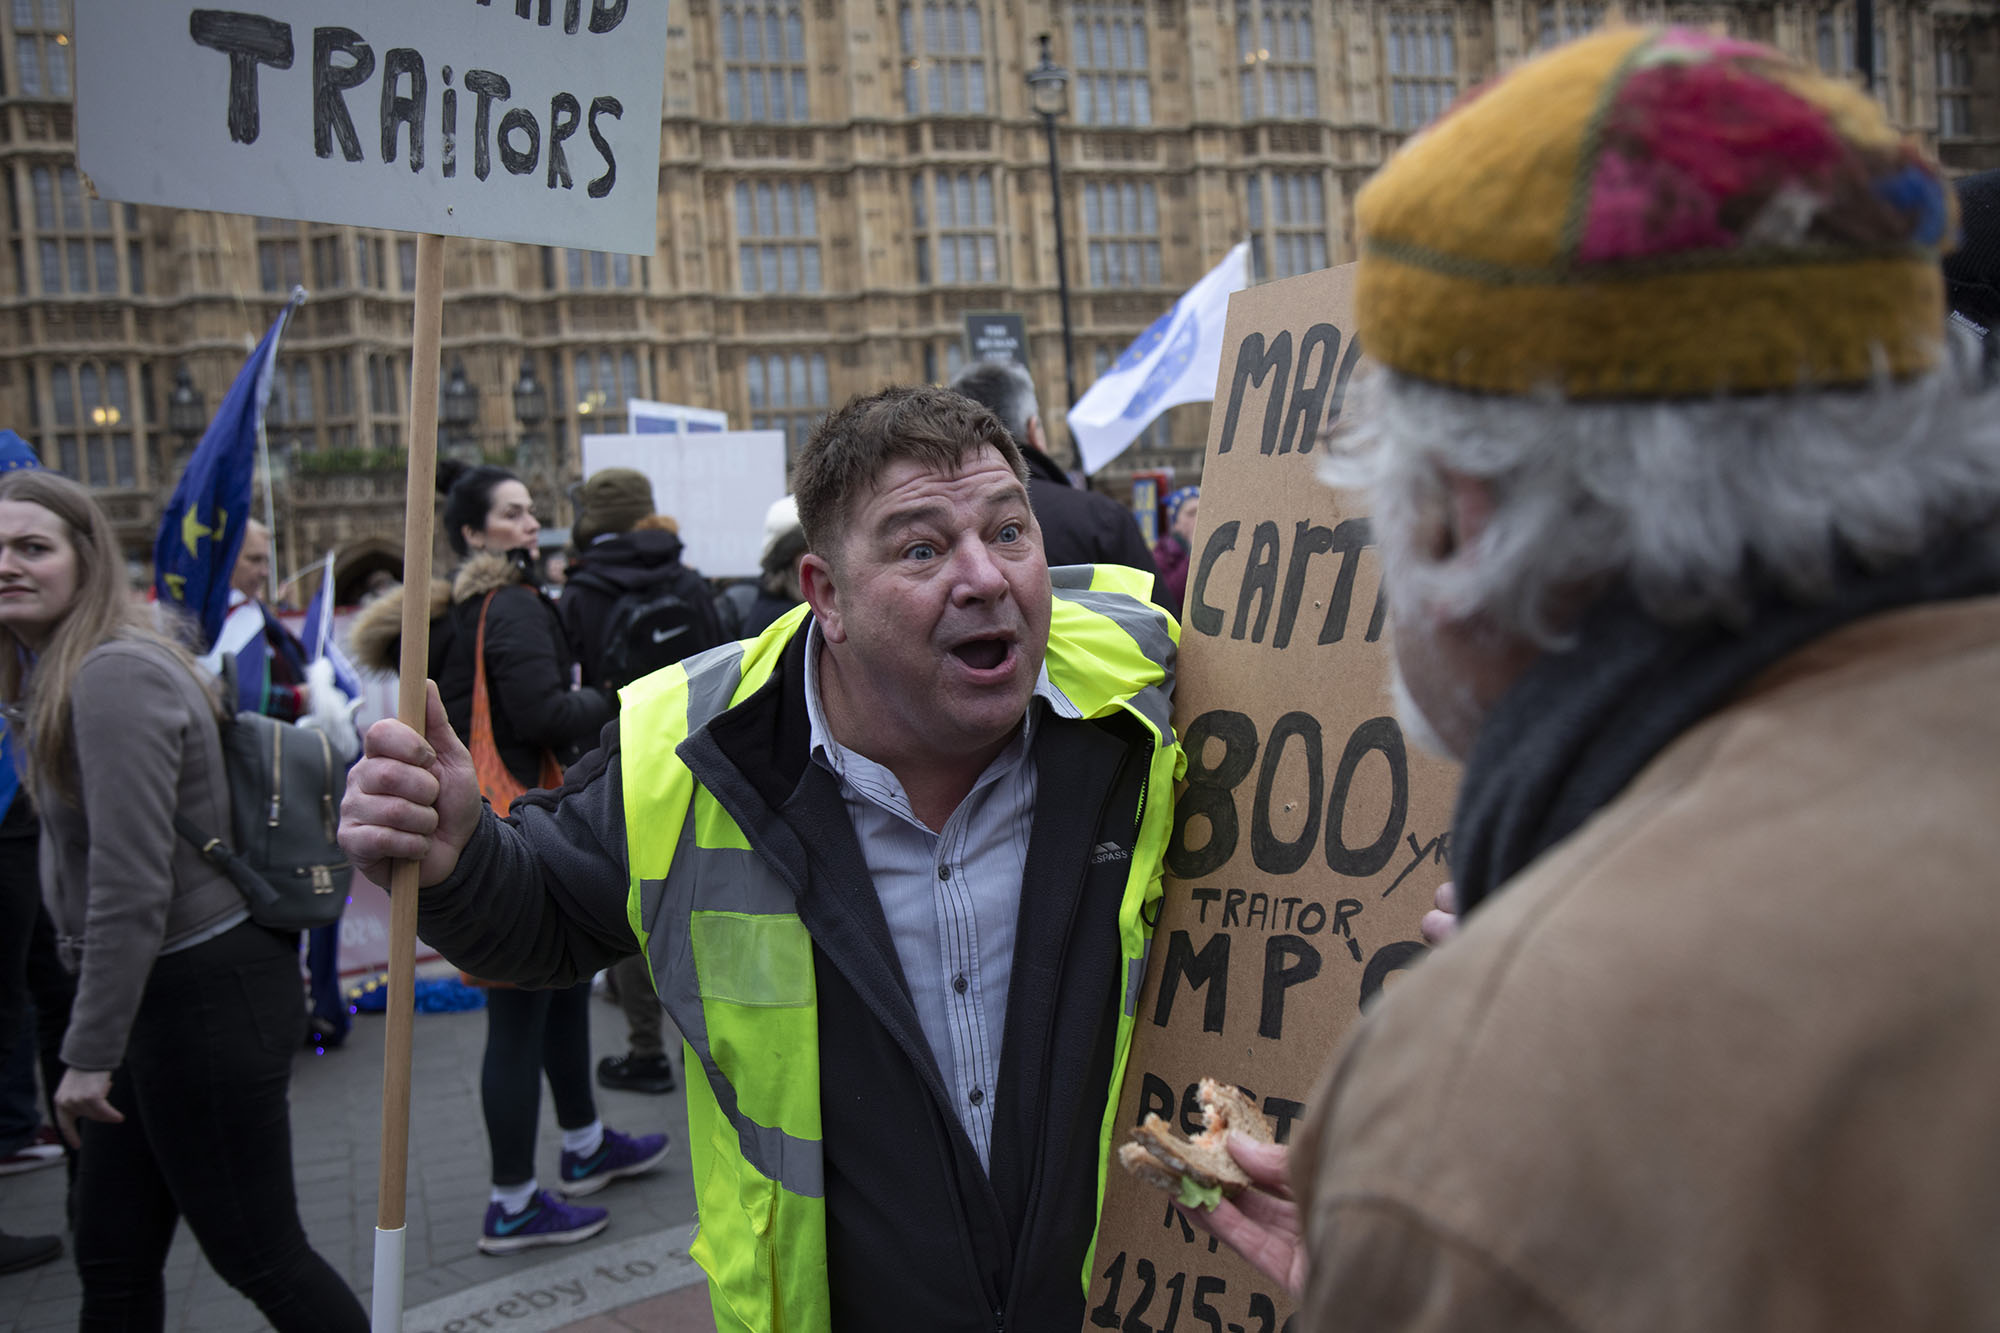 Yellow Jacket protester screams at an anti-Brexit protester on the day of the first 'meaningful vote' when MPs will back or reject the Prime Minister's Brexit Withdrawal Agreement on 15th January 2019.